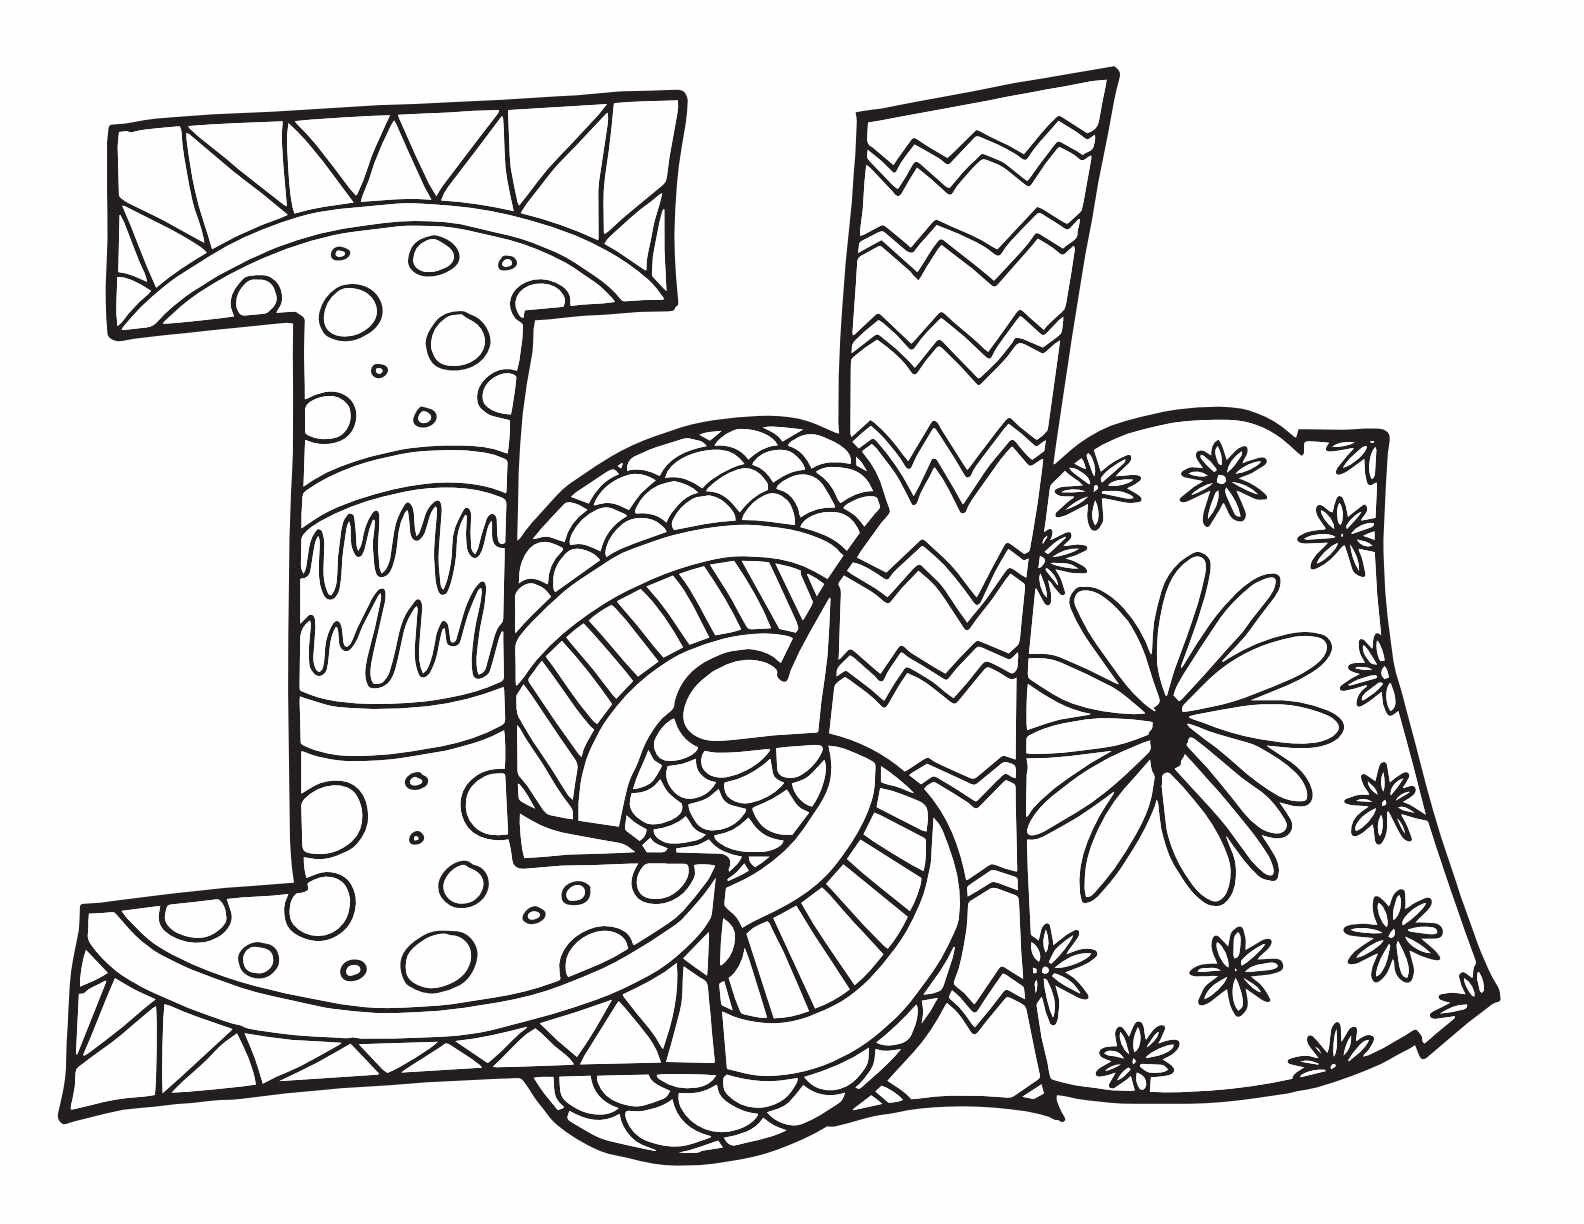 Isla Free Printable Coloring Page Stevie Doodles Free Printable Coloring Pages Free Printable Coloring Printable Coloring Pages